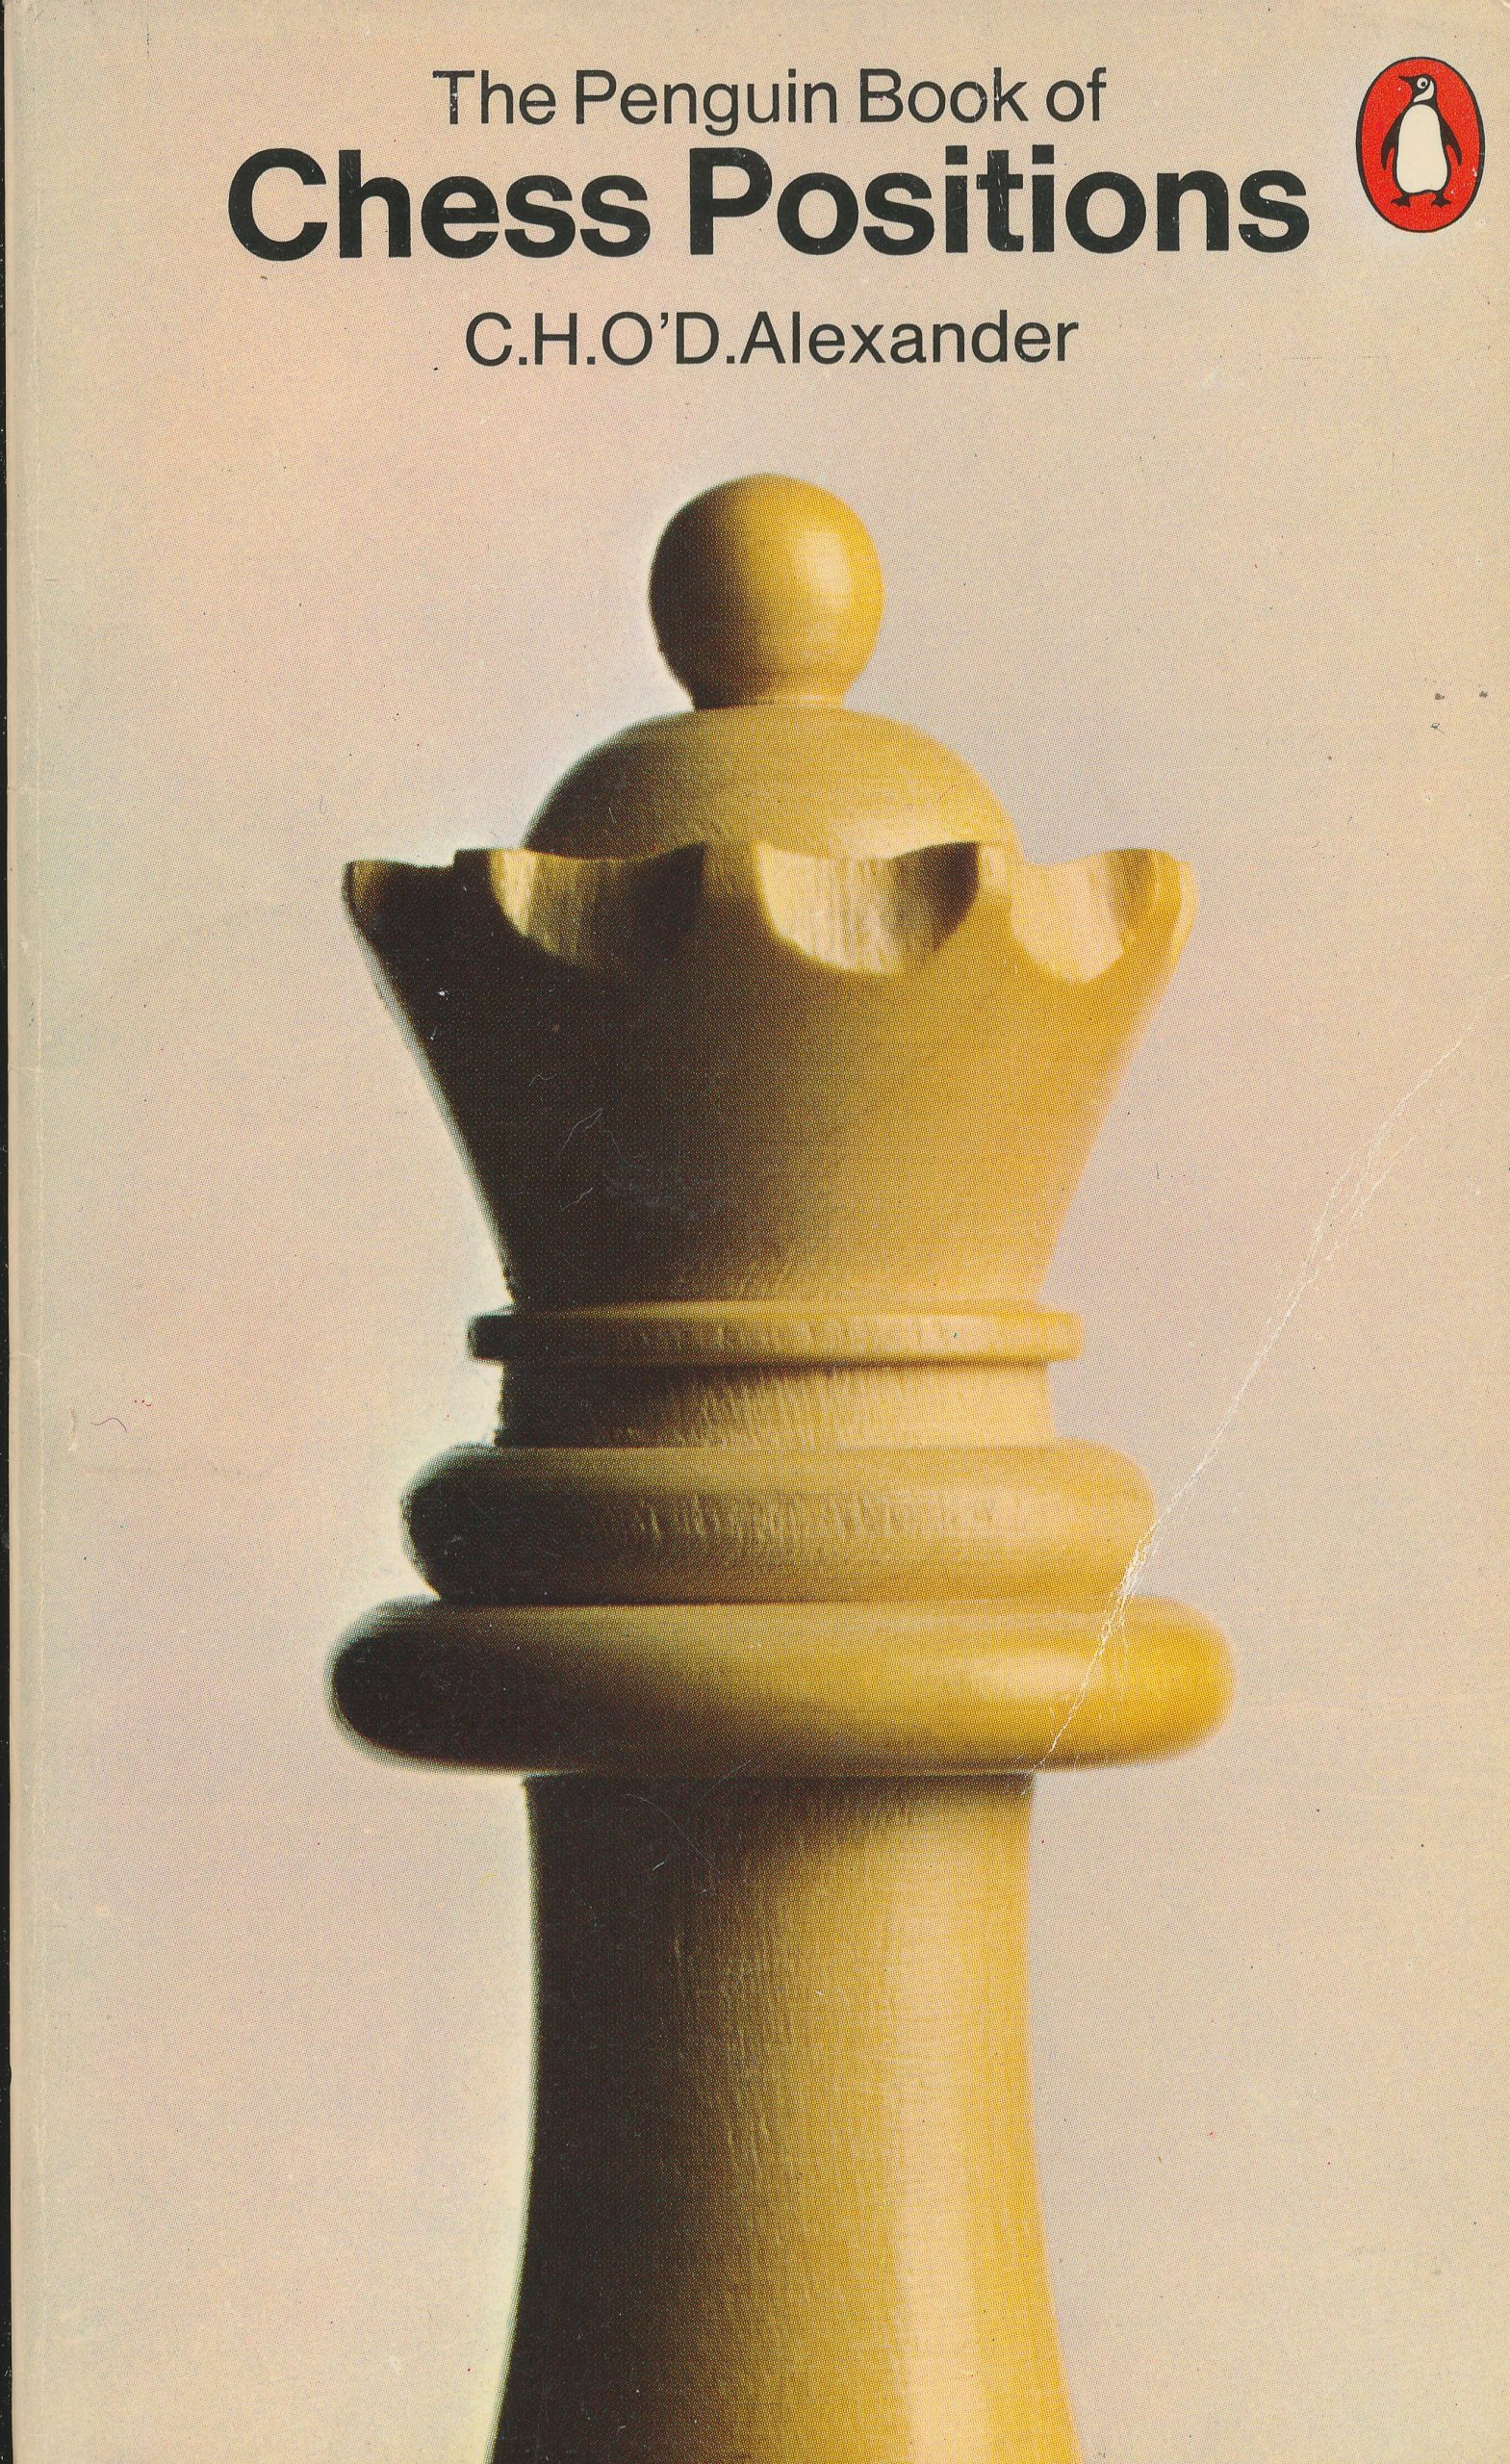 The Penguin Book of Chess Positions, CHO'D Alexander, Penguin, 1973, ISBN 0 14 046 199X